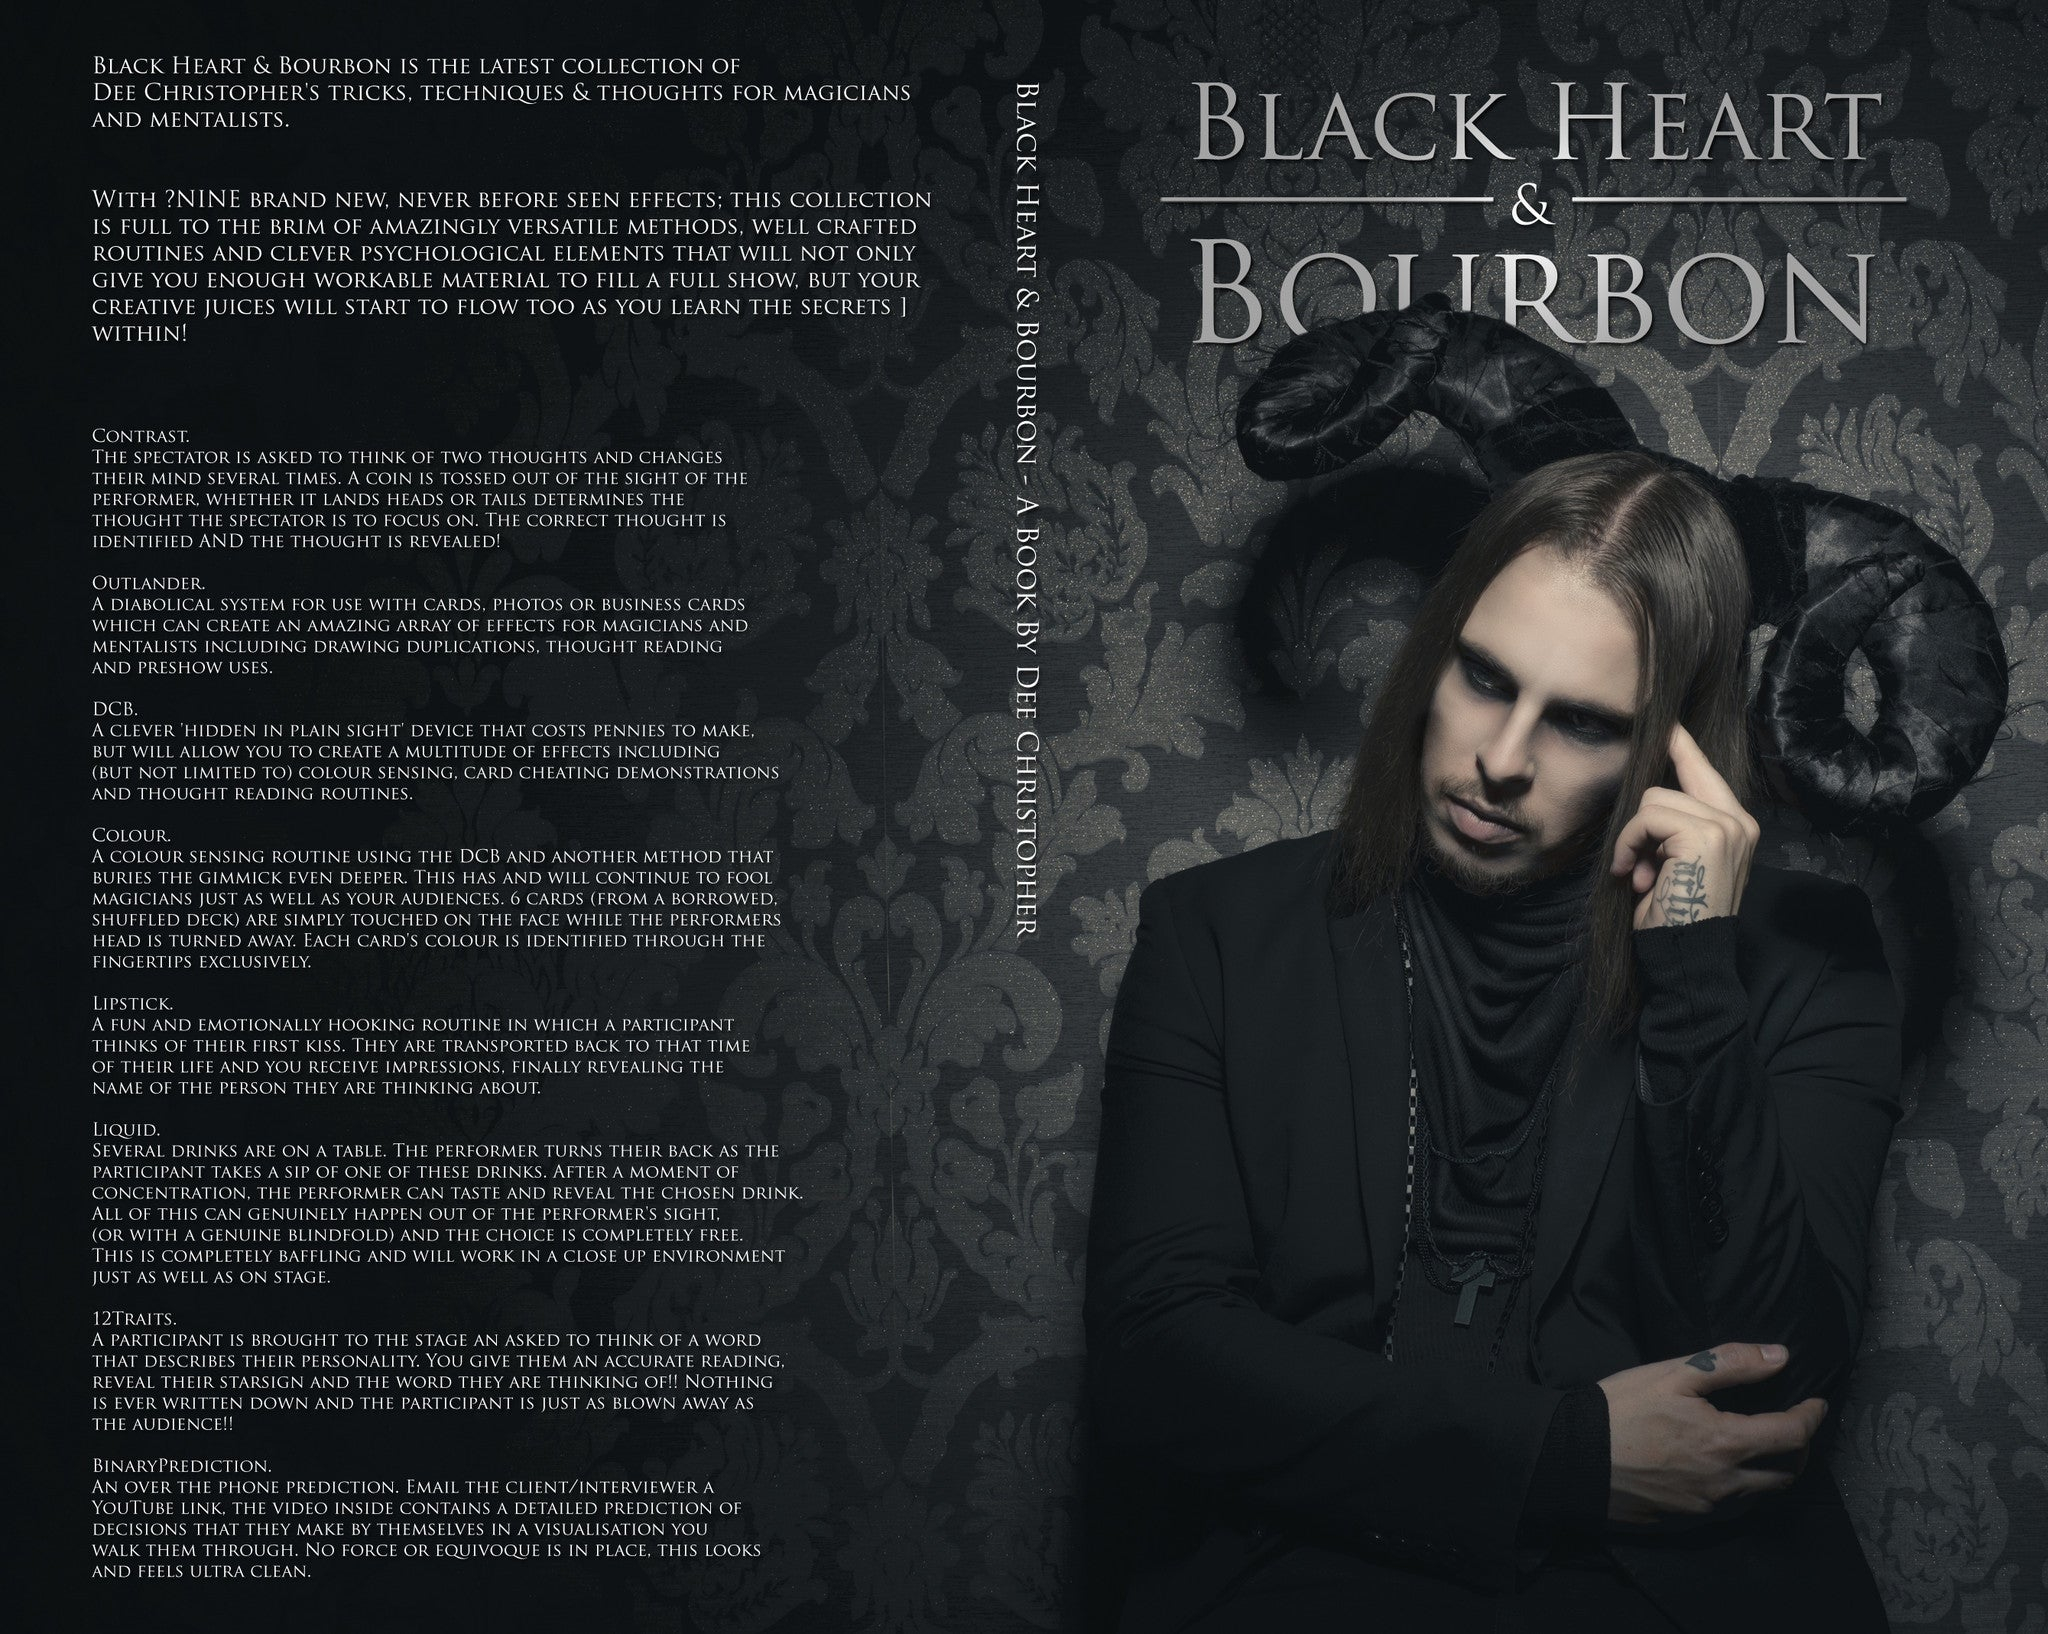 Black Heart & Bourbon